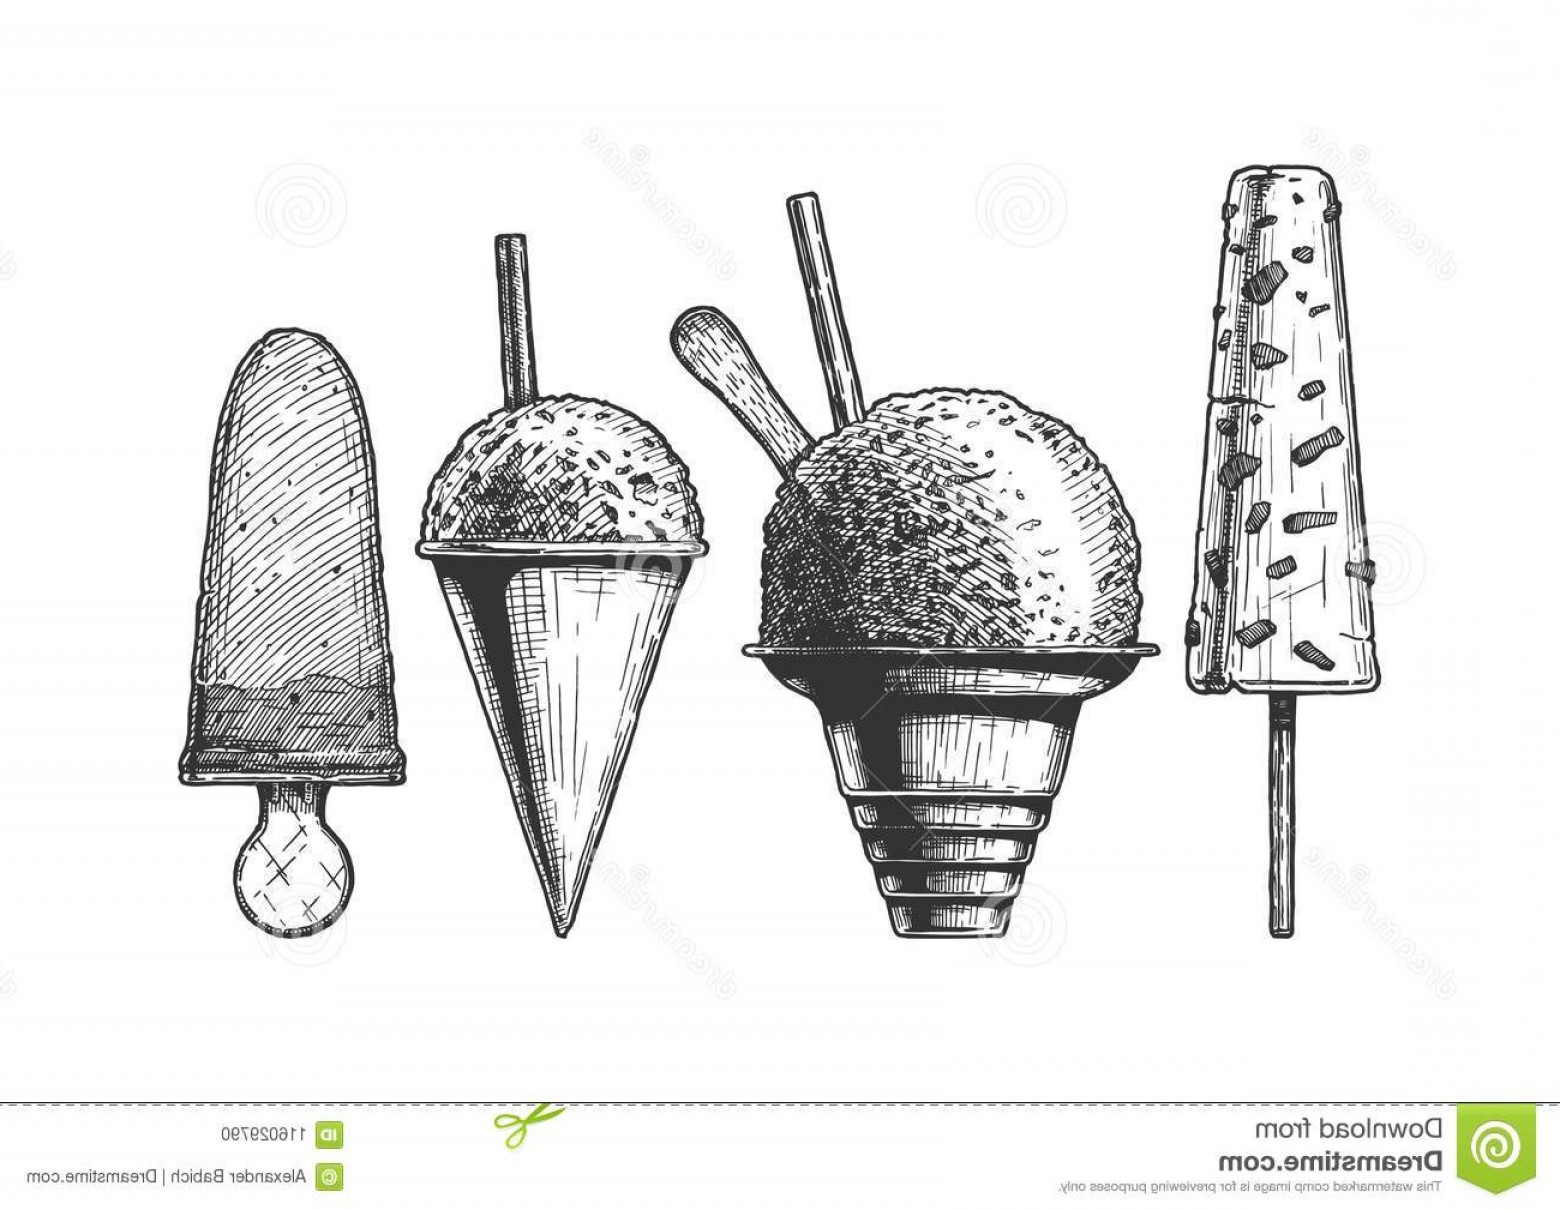 Snow Cone Outline Vector: Set Frozen Dessert Ice Based Kulfi Shaved Snow Cones Cream Vector Hand Drawn Illustration Vintage Engraved Style Image